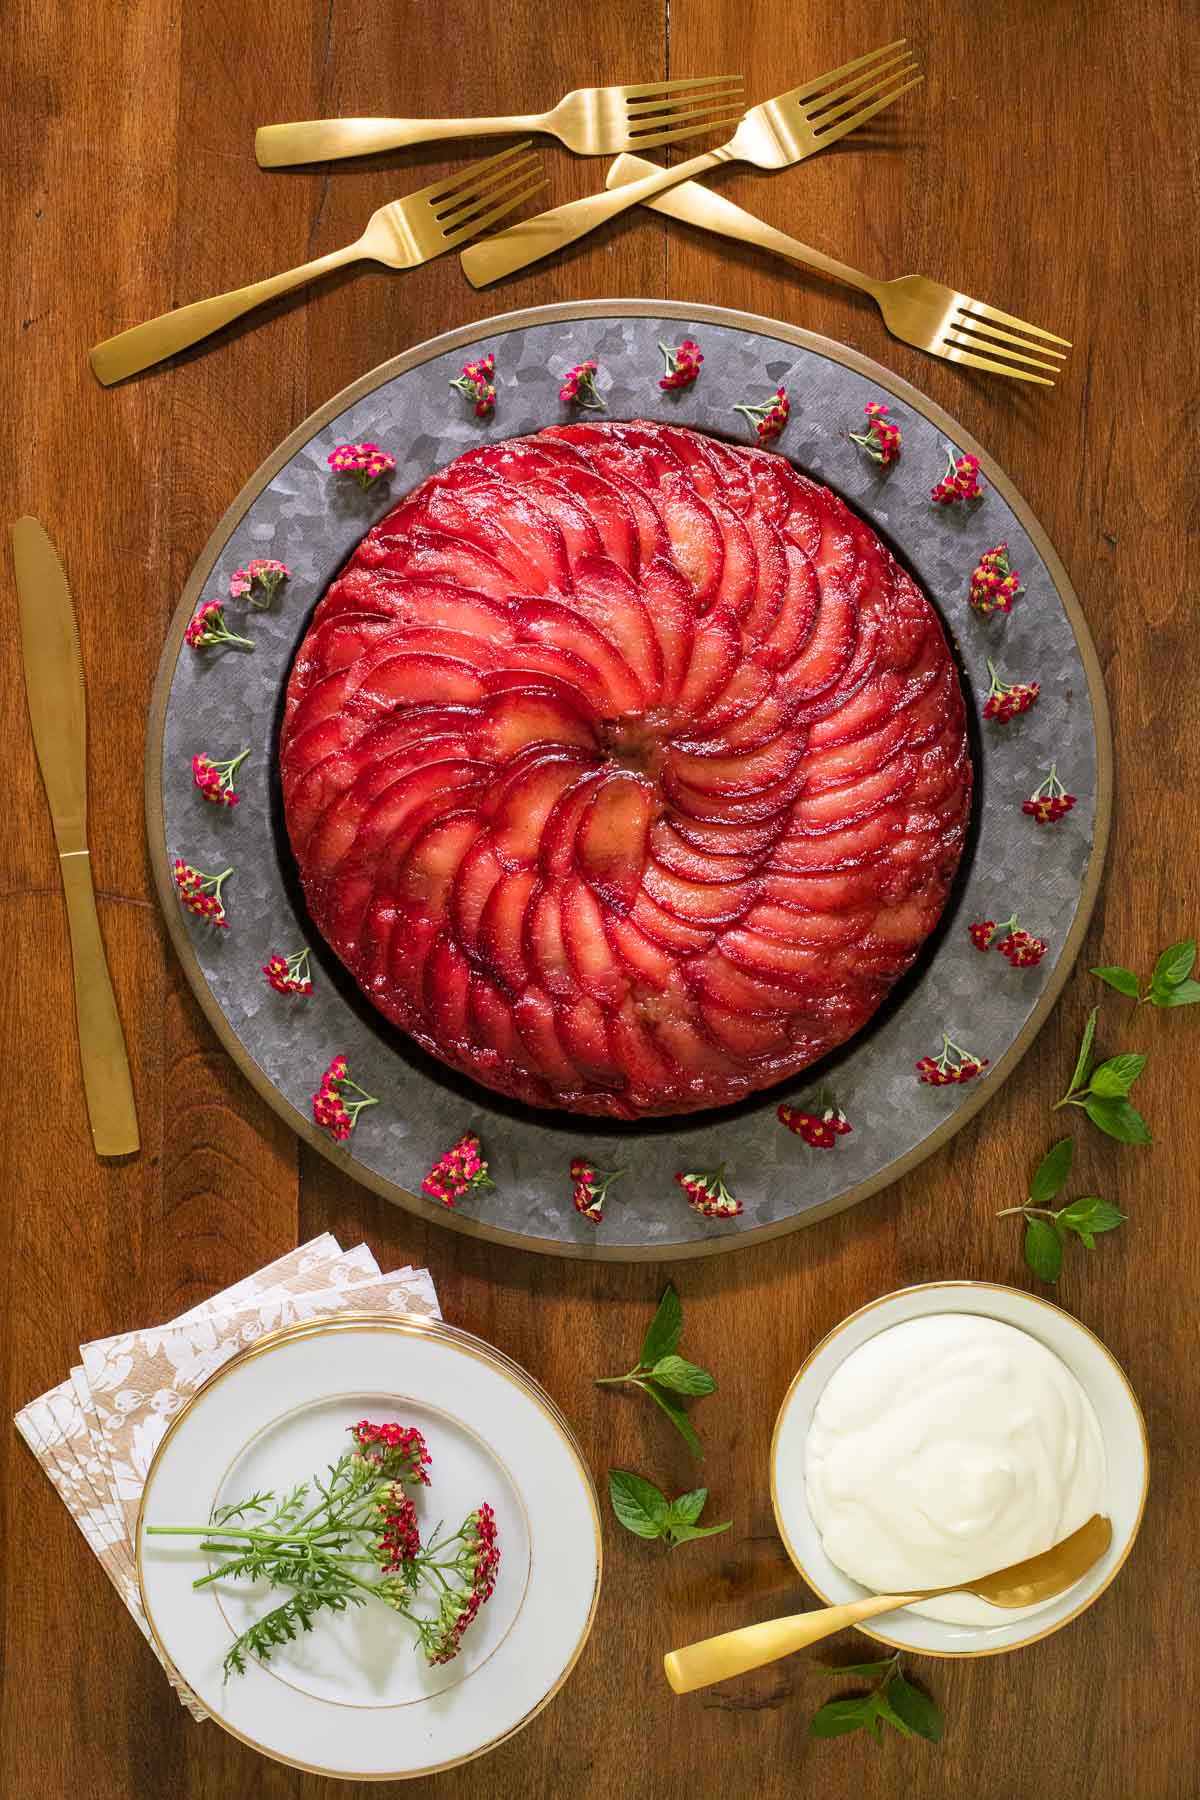 Vertical overhead photo of a Upside Down Plum Cake - on a steel charger plate surrounded by gold utensils